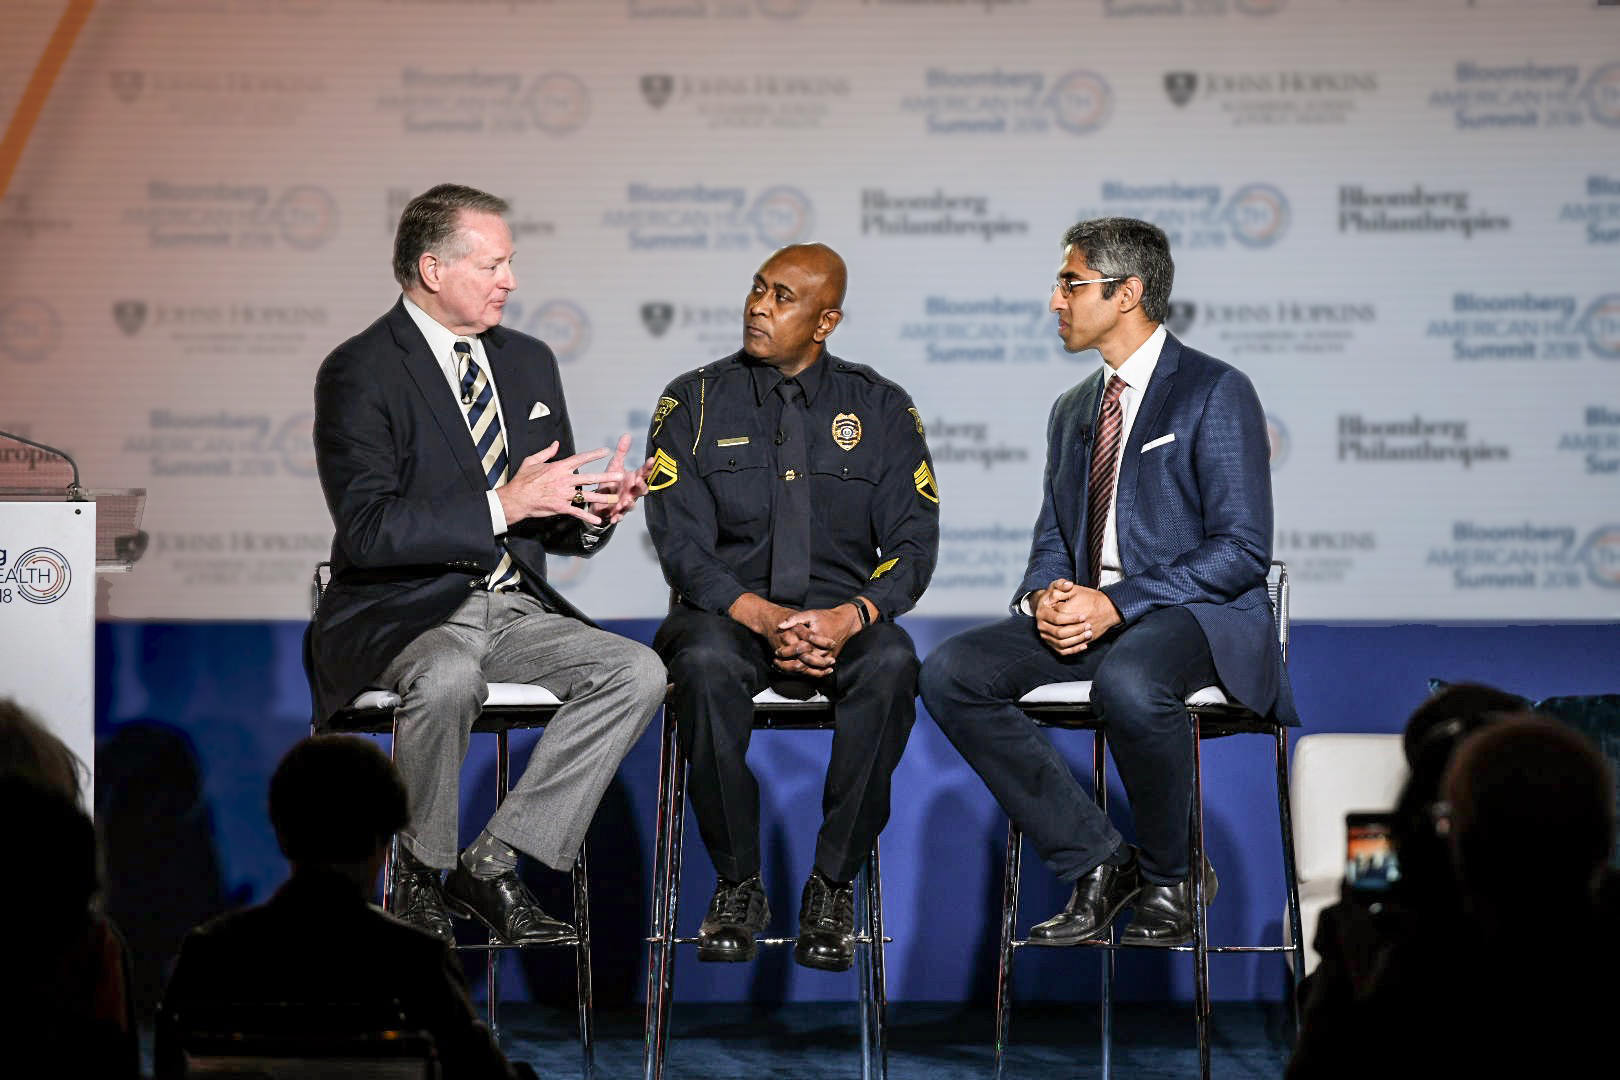 Mayor Steve Williams of Huntington, West Virginia, discusses his city's response to the opioid crisis with Huntington Police Sergeant Paul Hunter and the 19th United States Surgeon General Vivek Murthy at the Bloomberg American Health Summit in Washington, D.C.